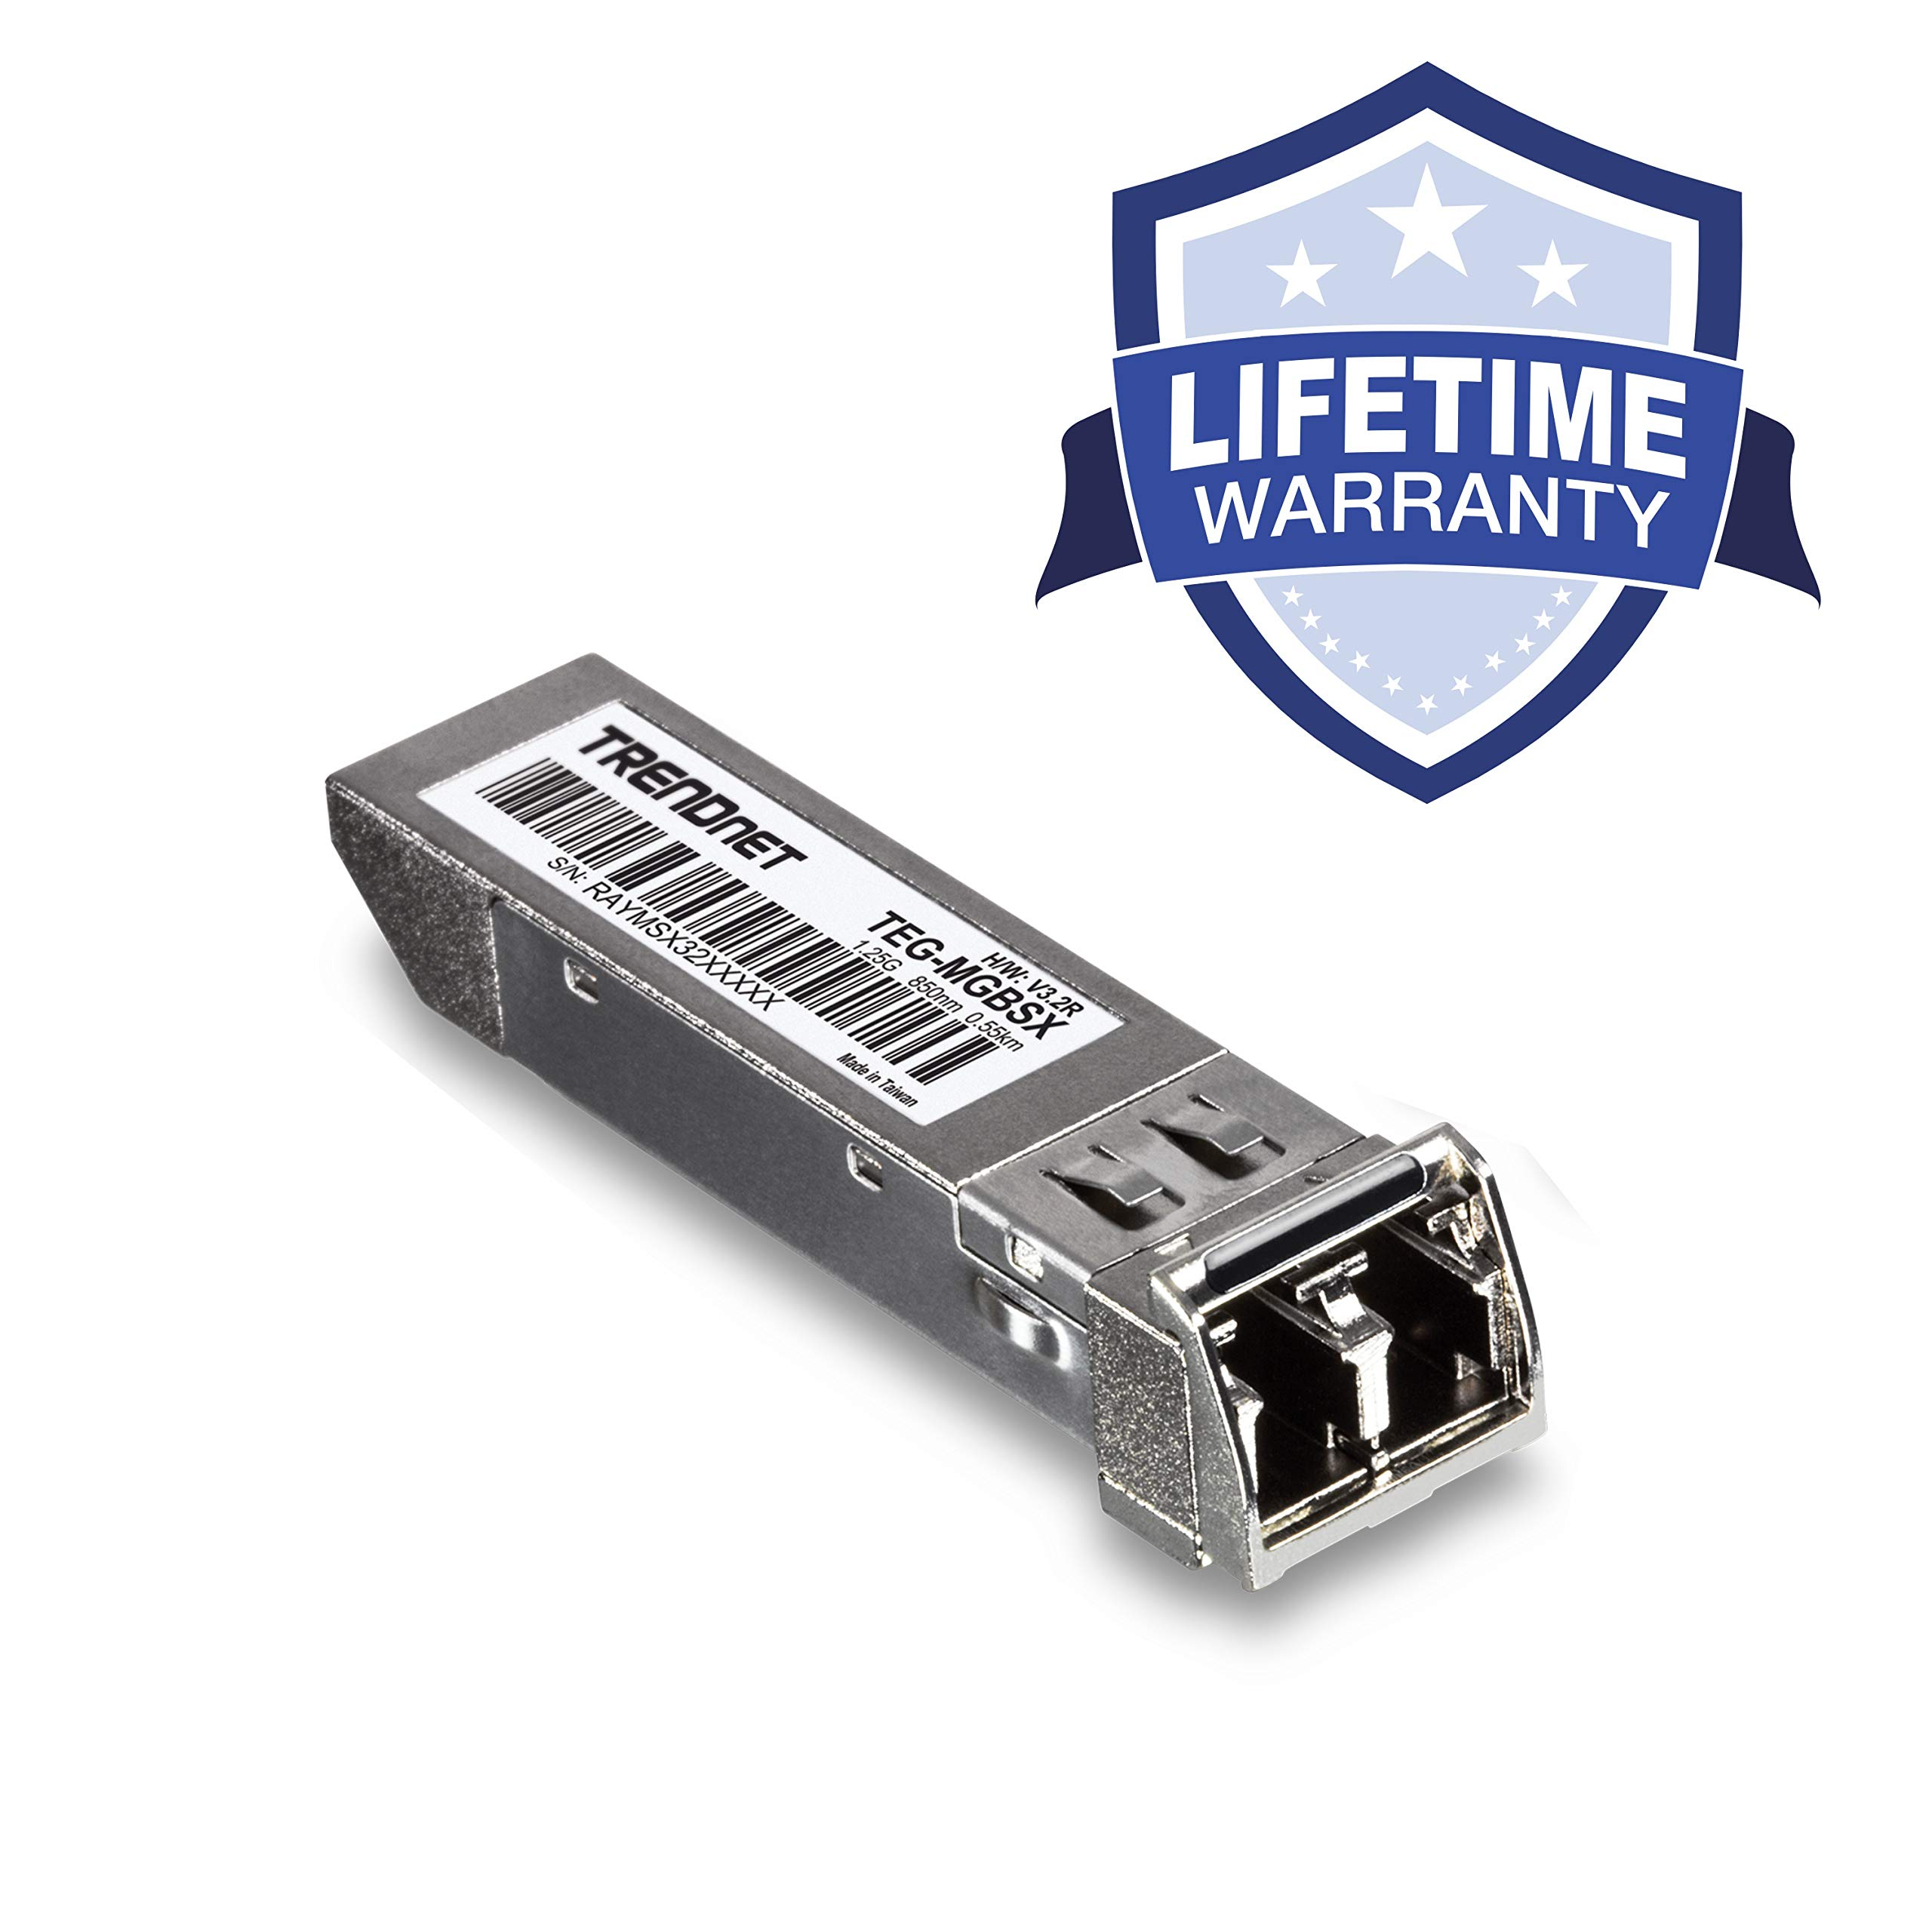 TRENDnet Gigabit SFP LC Module, TEG-MGBSX, Multi-Mode, Mini-GBIC, Up to 550 M (1800 ft), Compatible w/Standard SFP Slots, Hot Pluggable, Compliant w/IEEE 802.3z Gigabit Ethernet, Lifetime Protection by TRENDnet